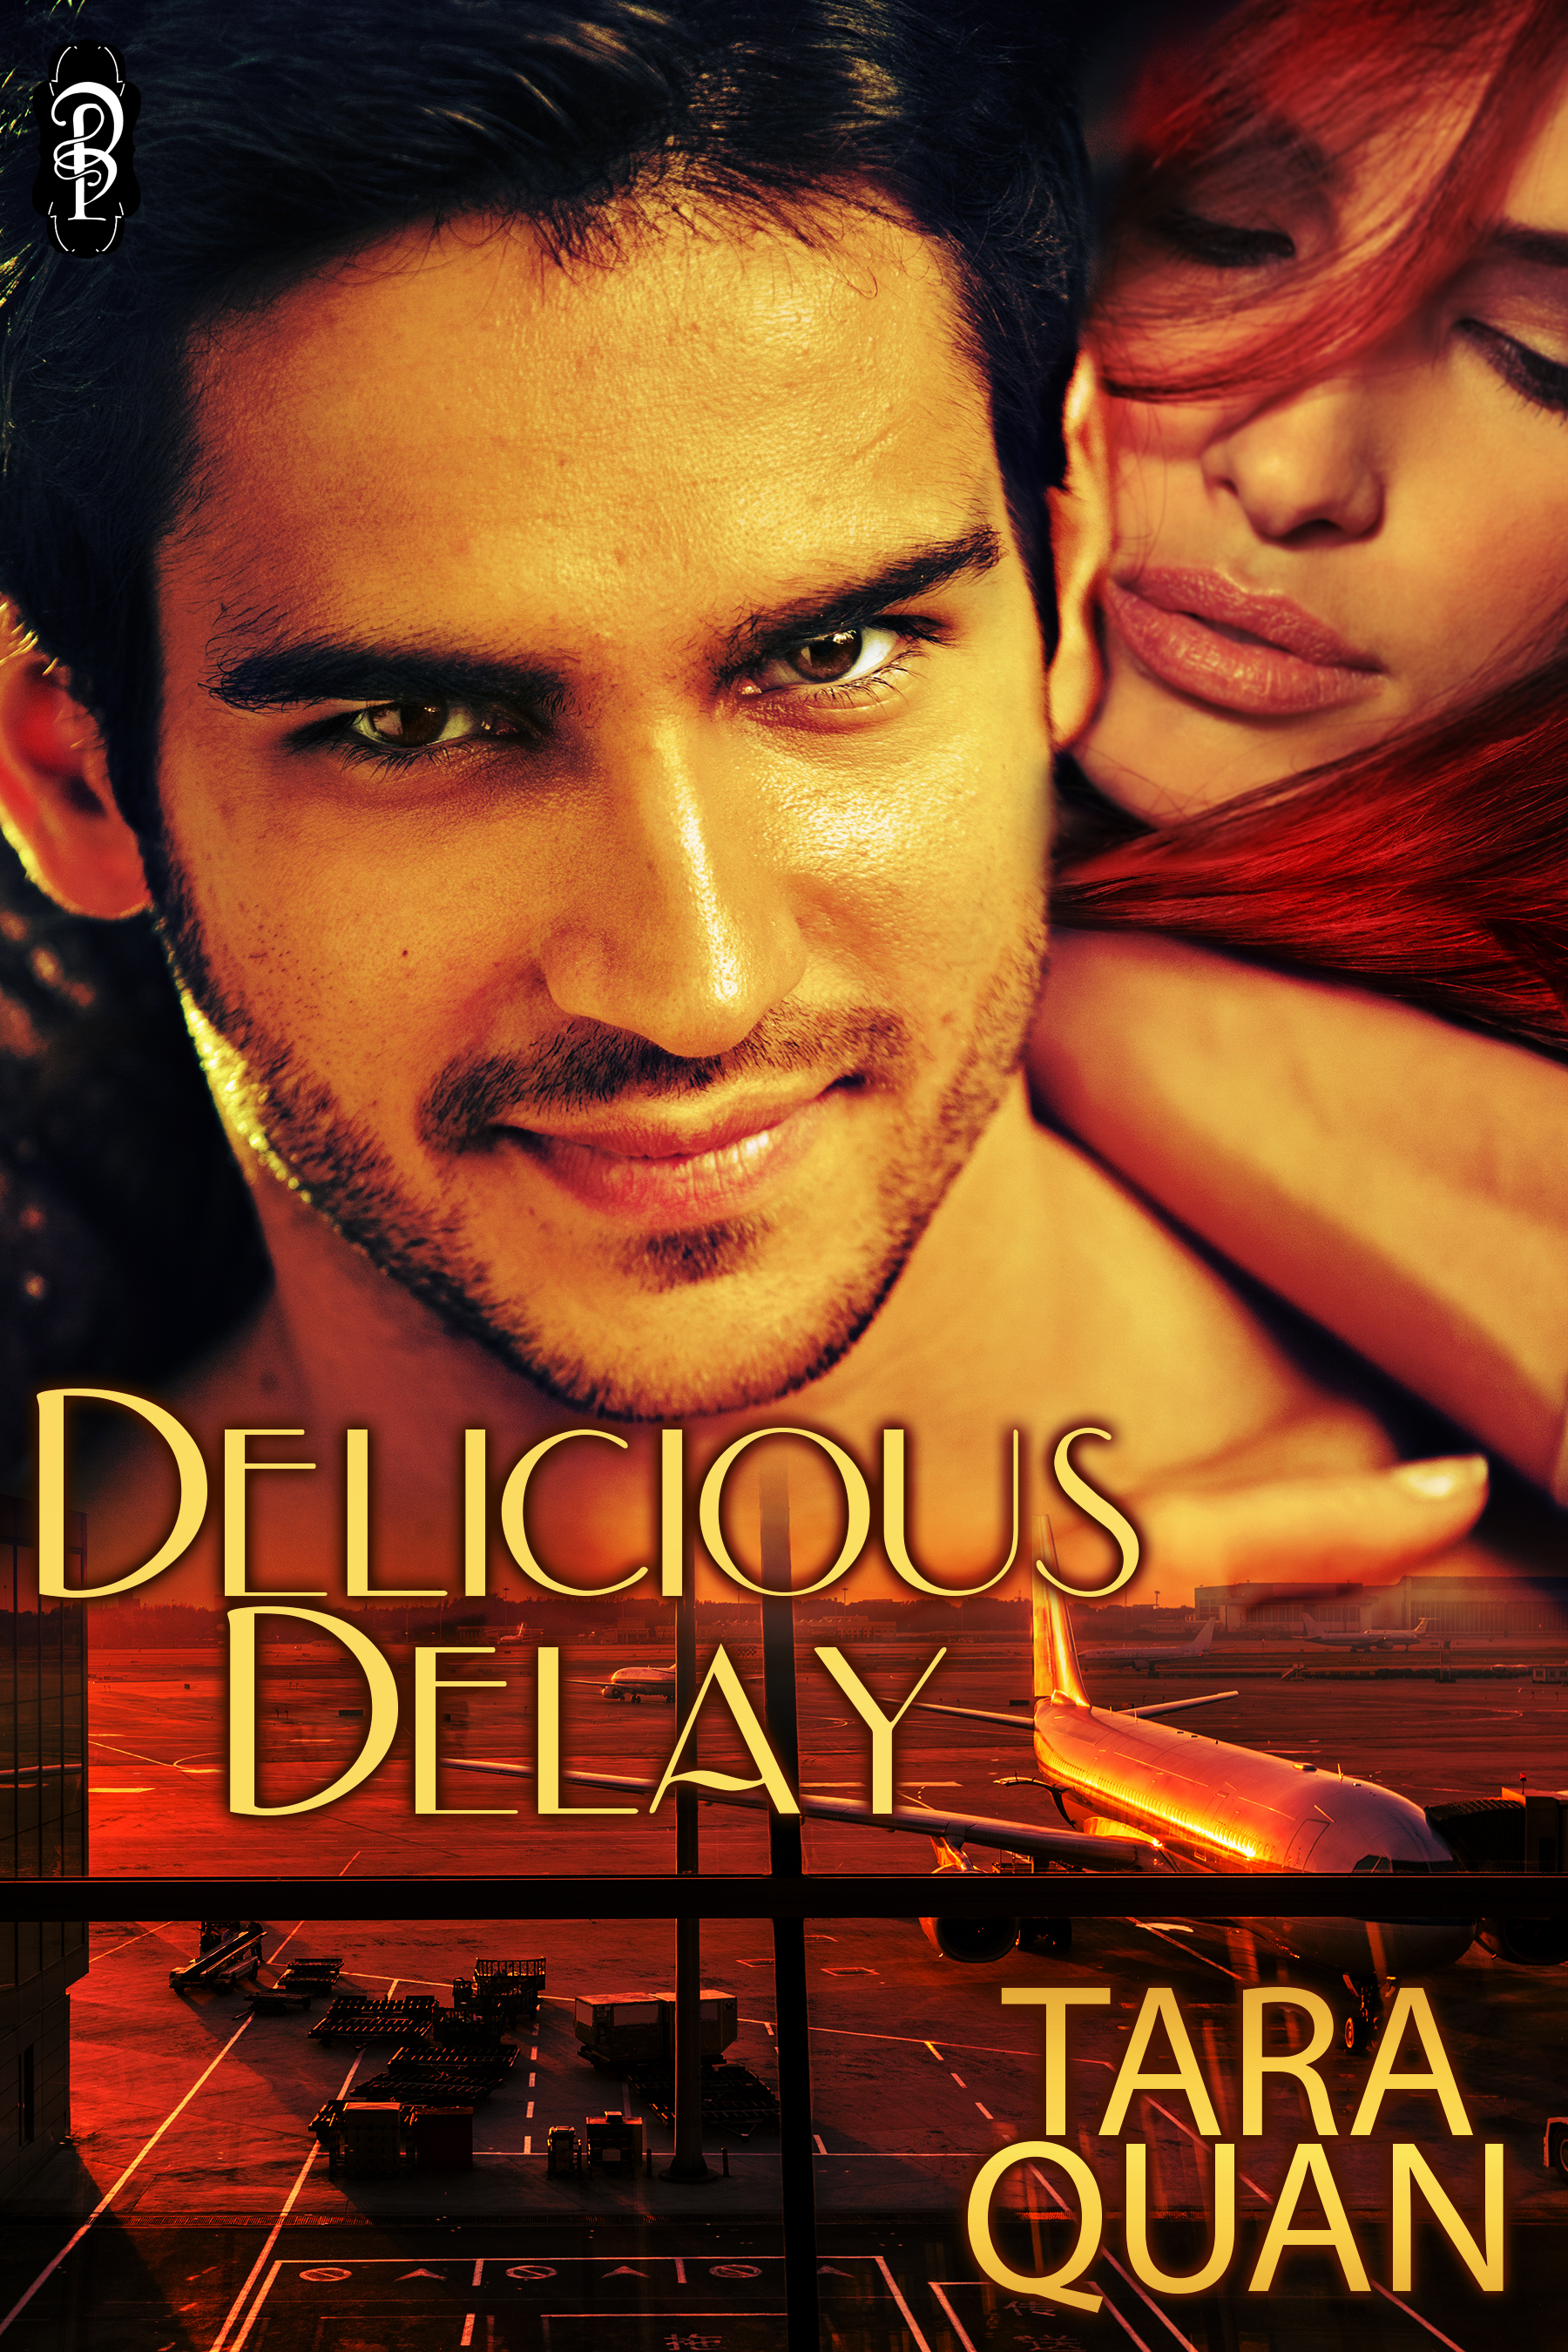 Delicious Delay-highres.jpg